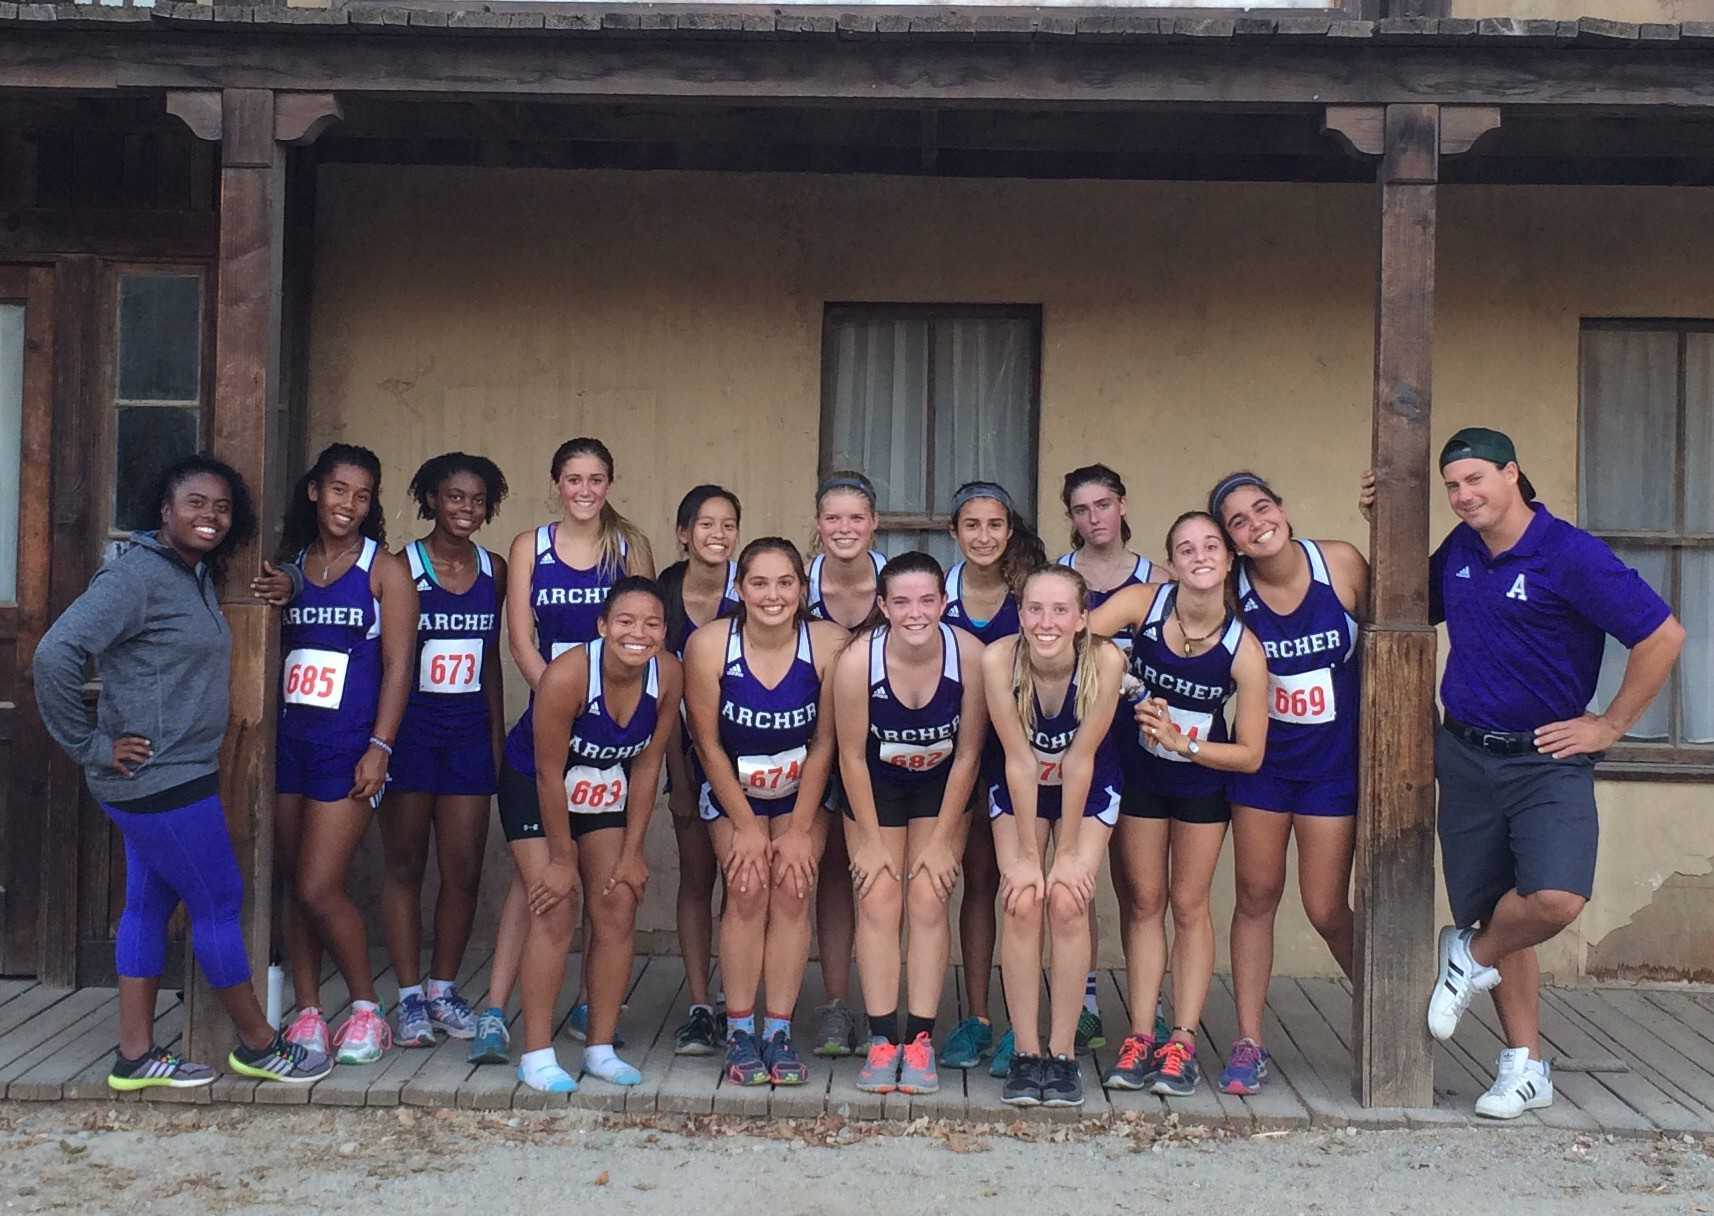 The Varsity Cross Country team poses with their coaches at Paramount Ranch after one of their meets. Leyla Namazie '17 won third place at this race. Photo courtesy of Alison Kiley '16.